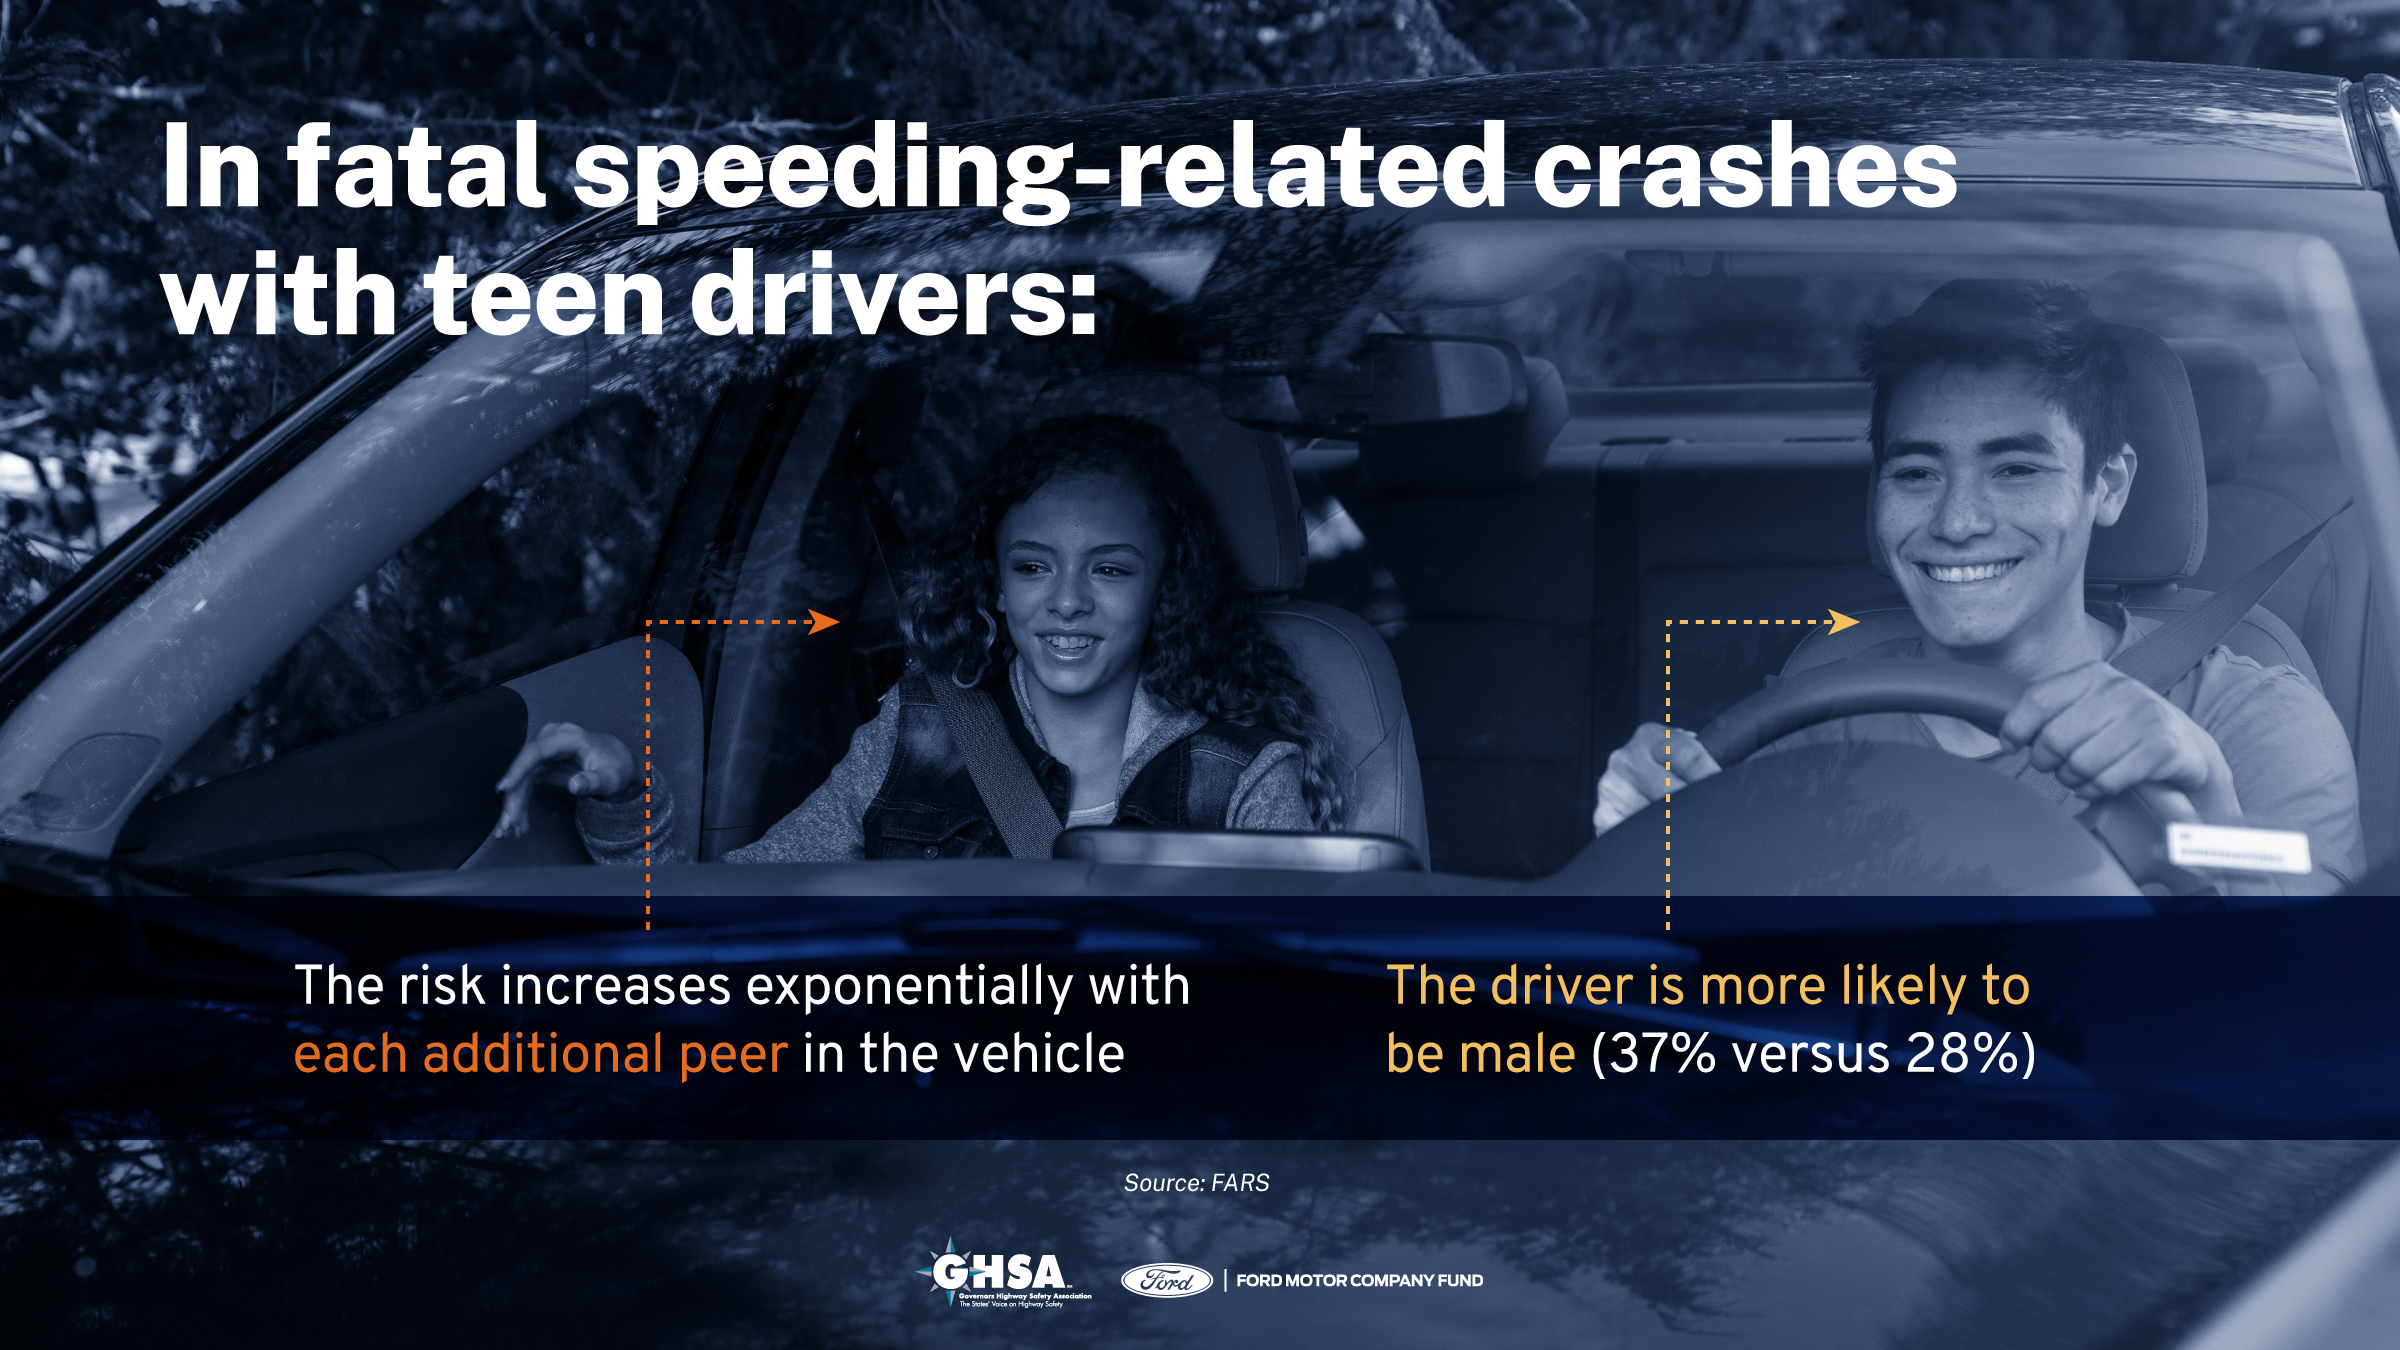 Teen speeding is a leading cause of fatalities